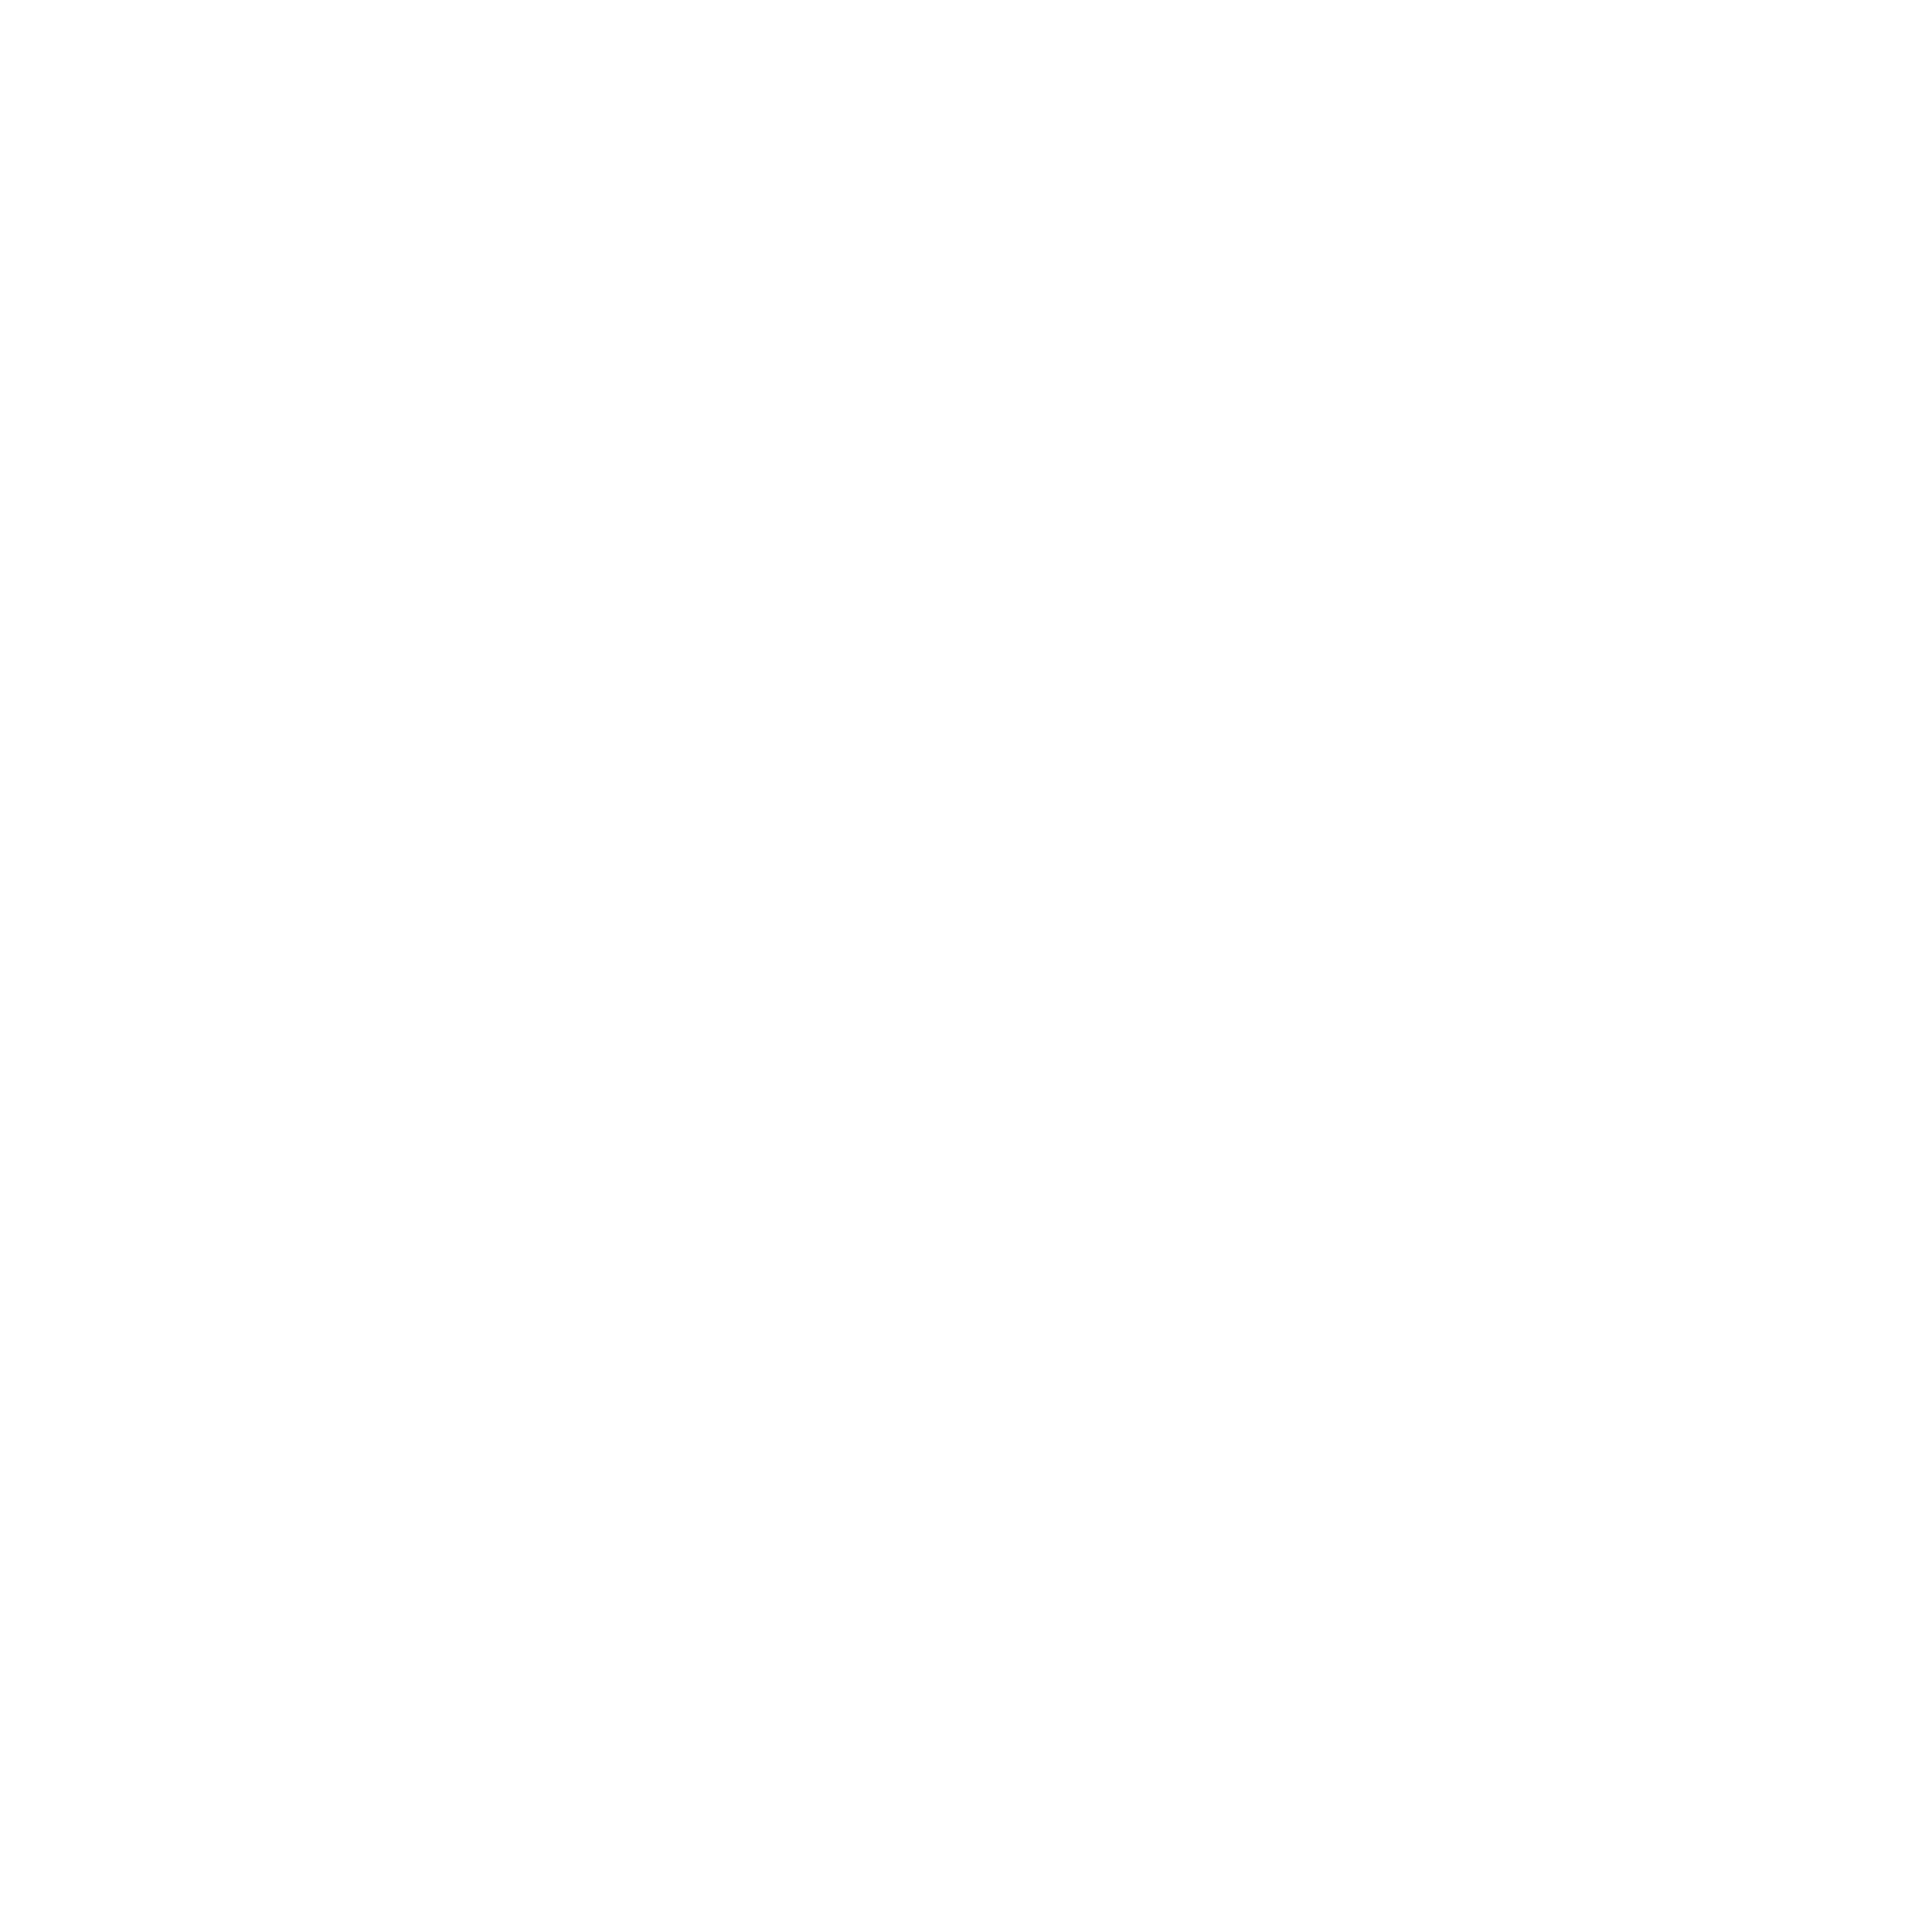 TRUSTED.png